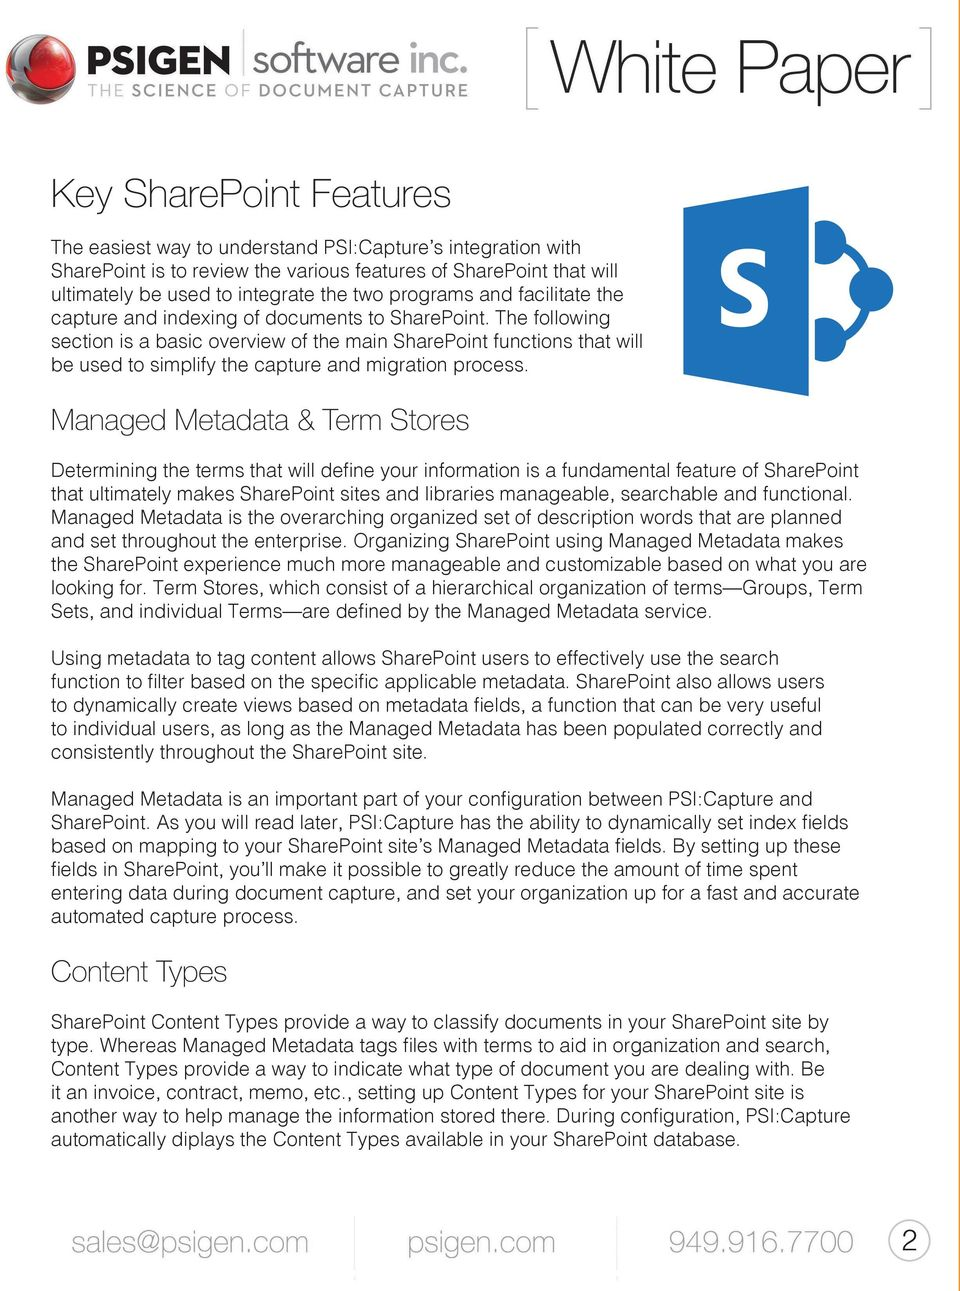 The following section is a basic overview of the main SharePoint functions that will be used to simplify the capture and migration process.